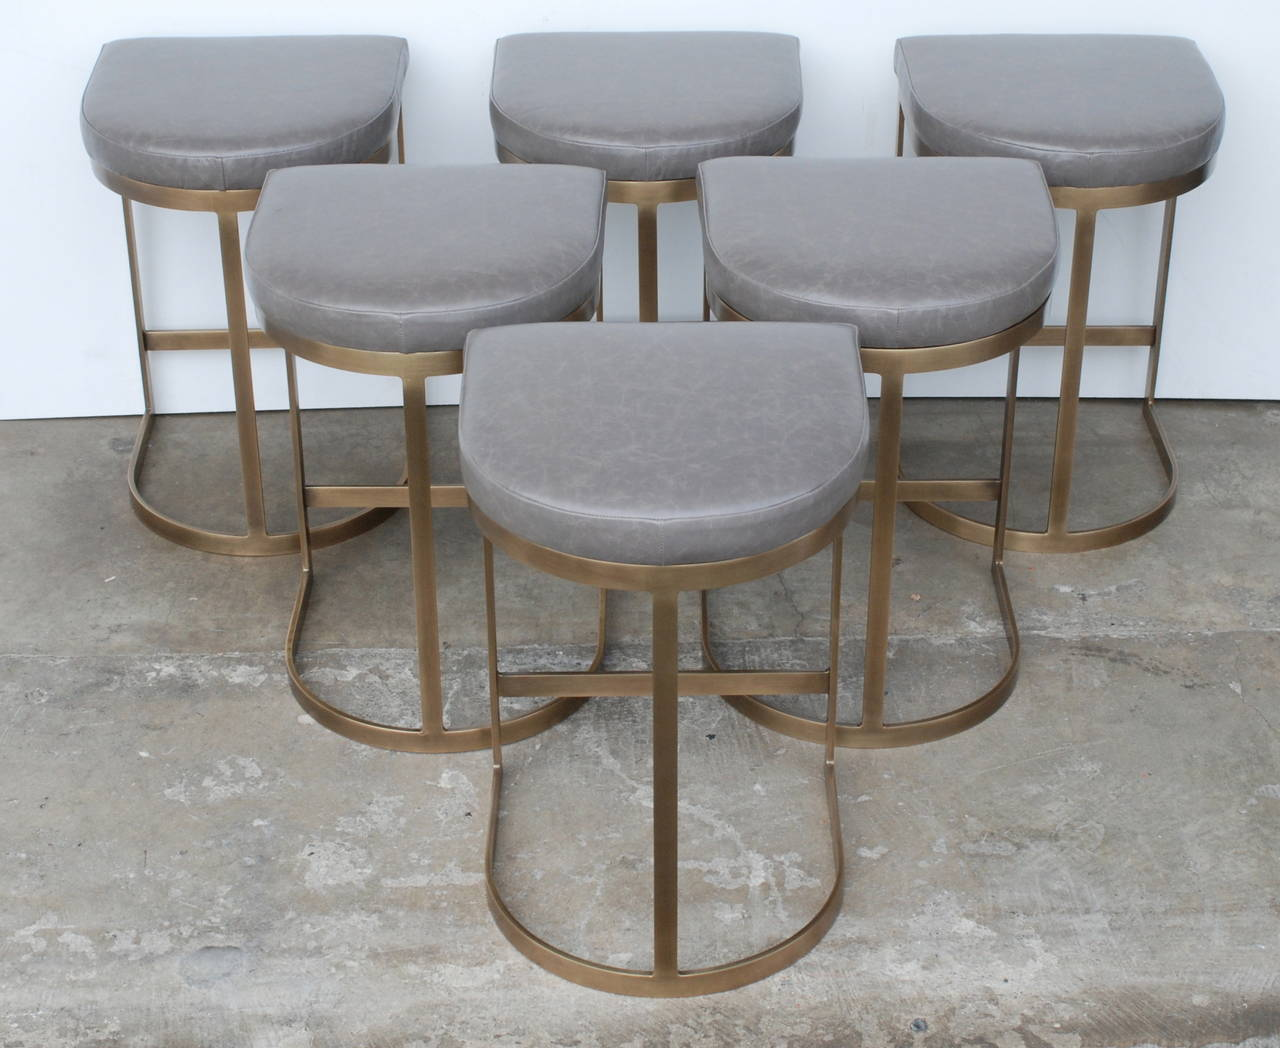 bar chairs concrete chair desk with storage bin uk milo baughman burnished brass stools in grey leather